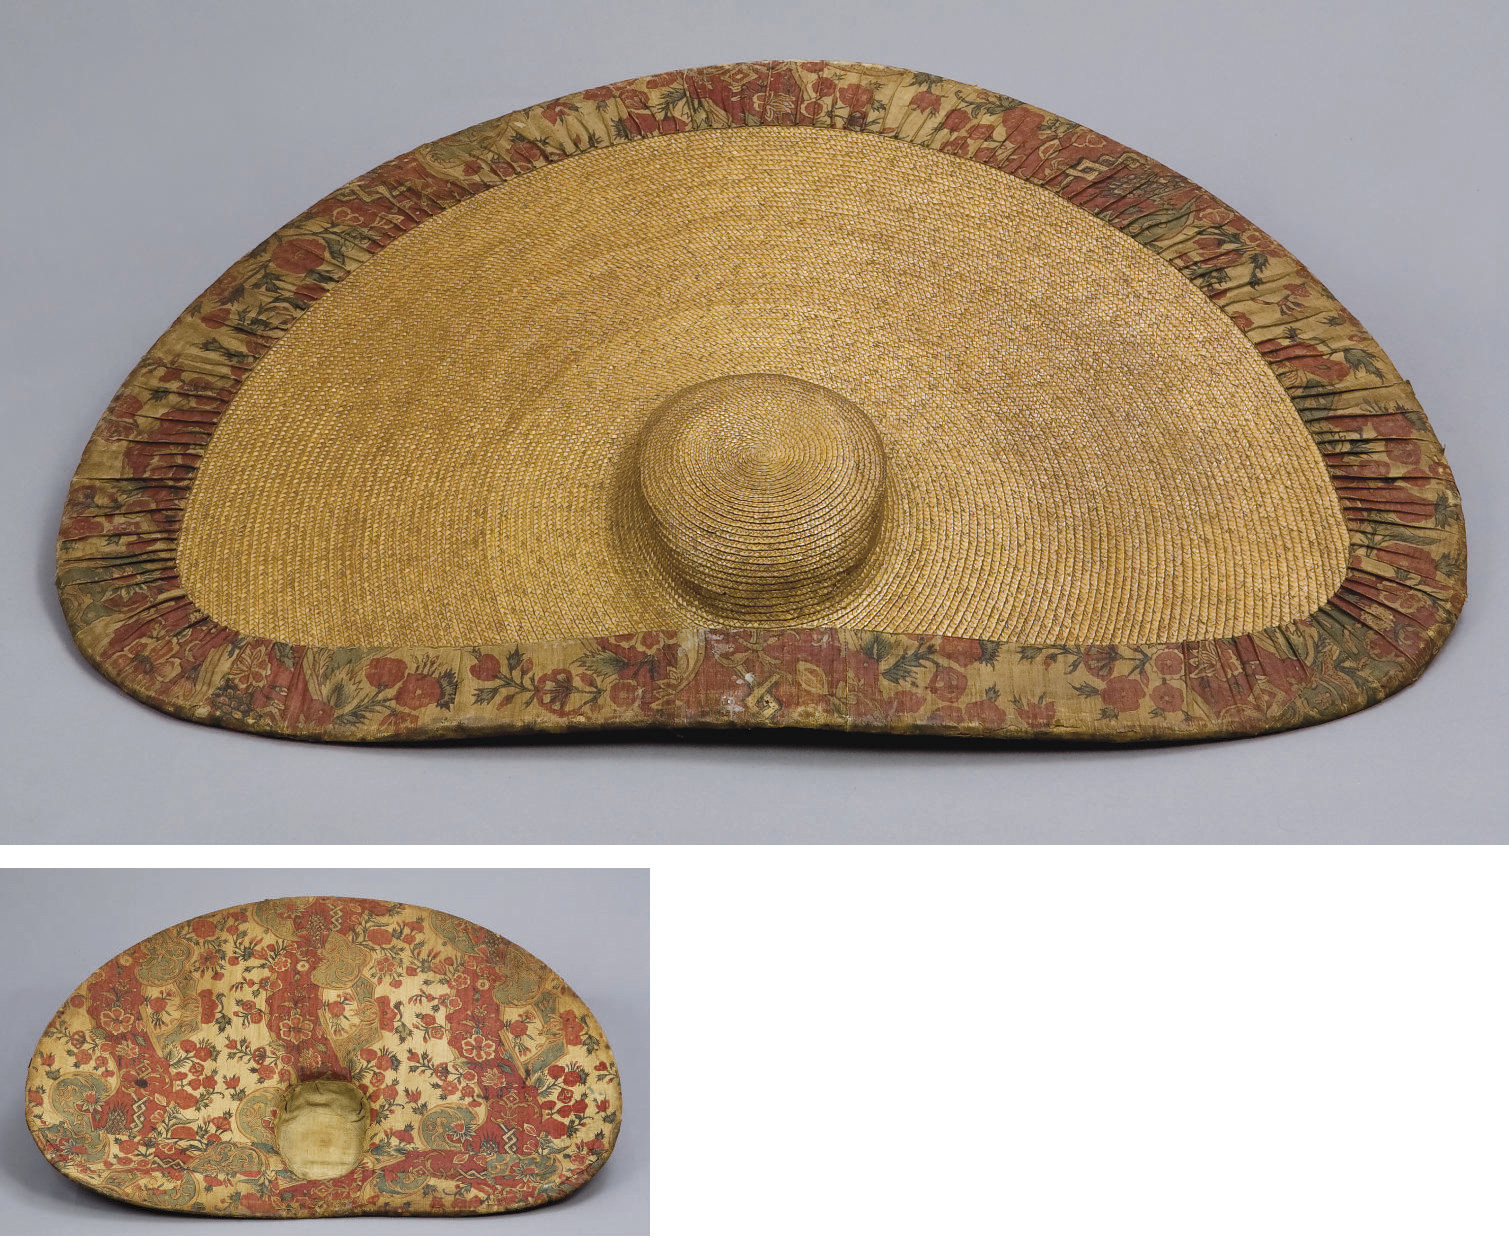 A FINE STRAW AND CHINTZ HAT